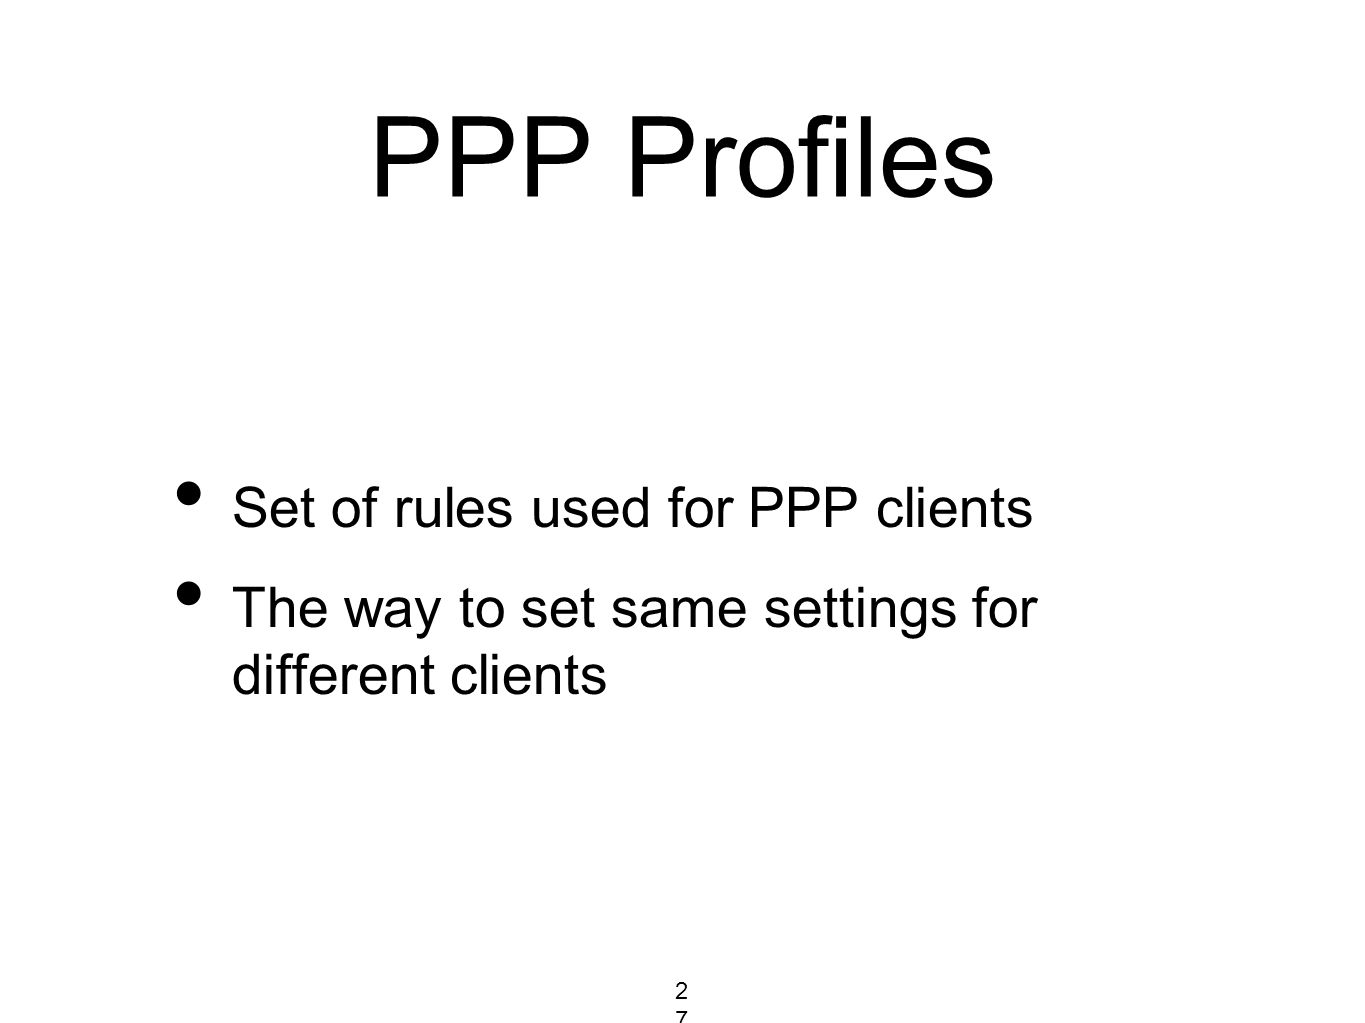 PPP Profiles Set of rules used for PPP clients The way to set same settings for different clients 274274274